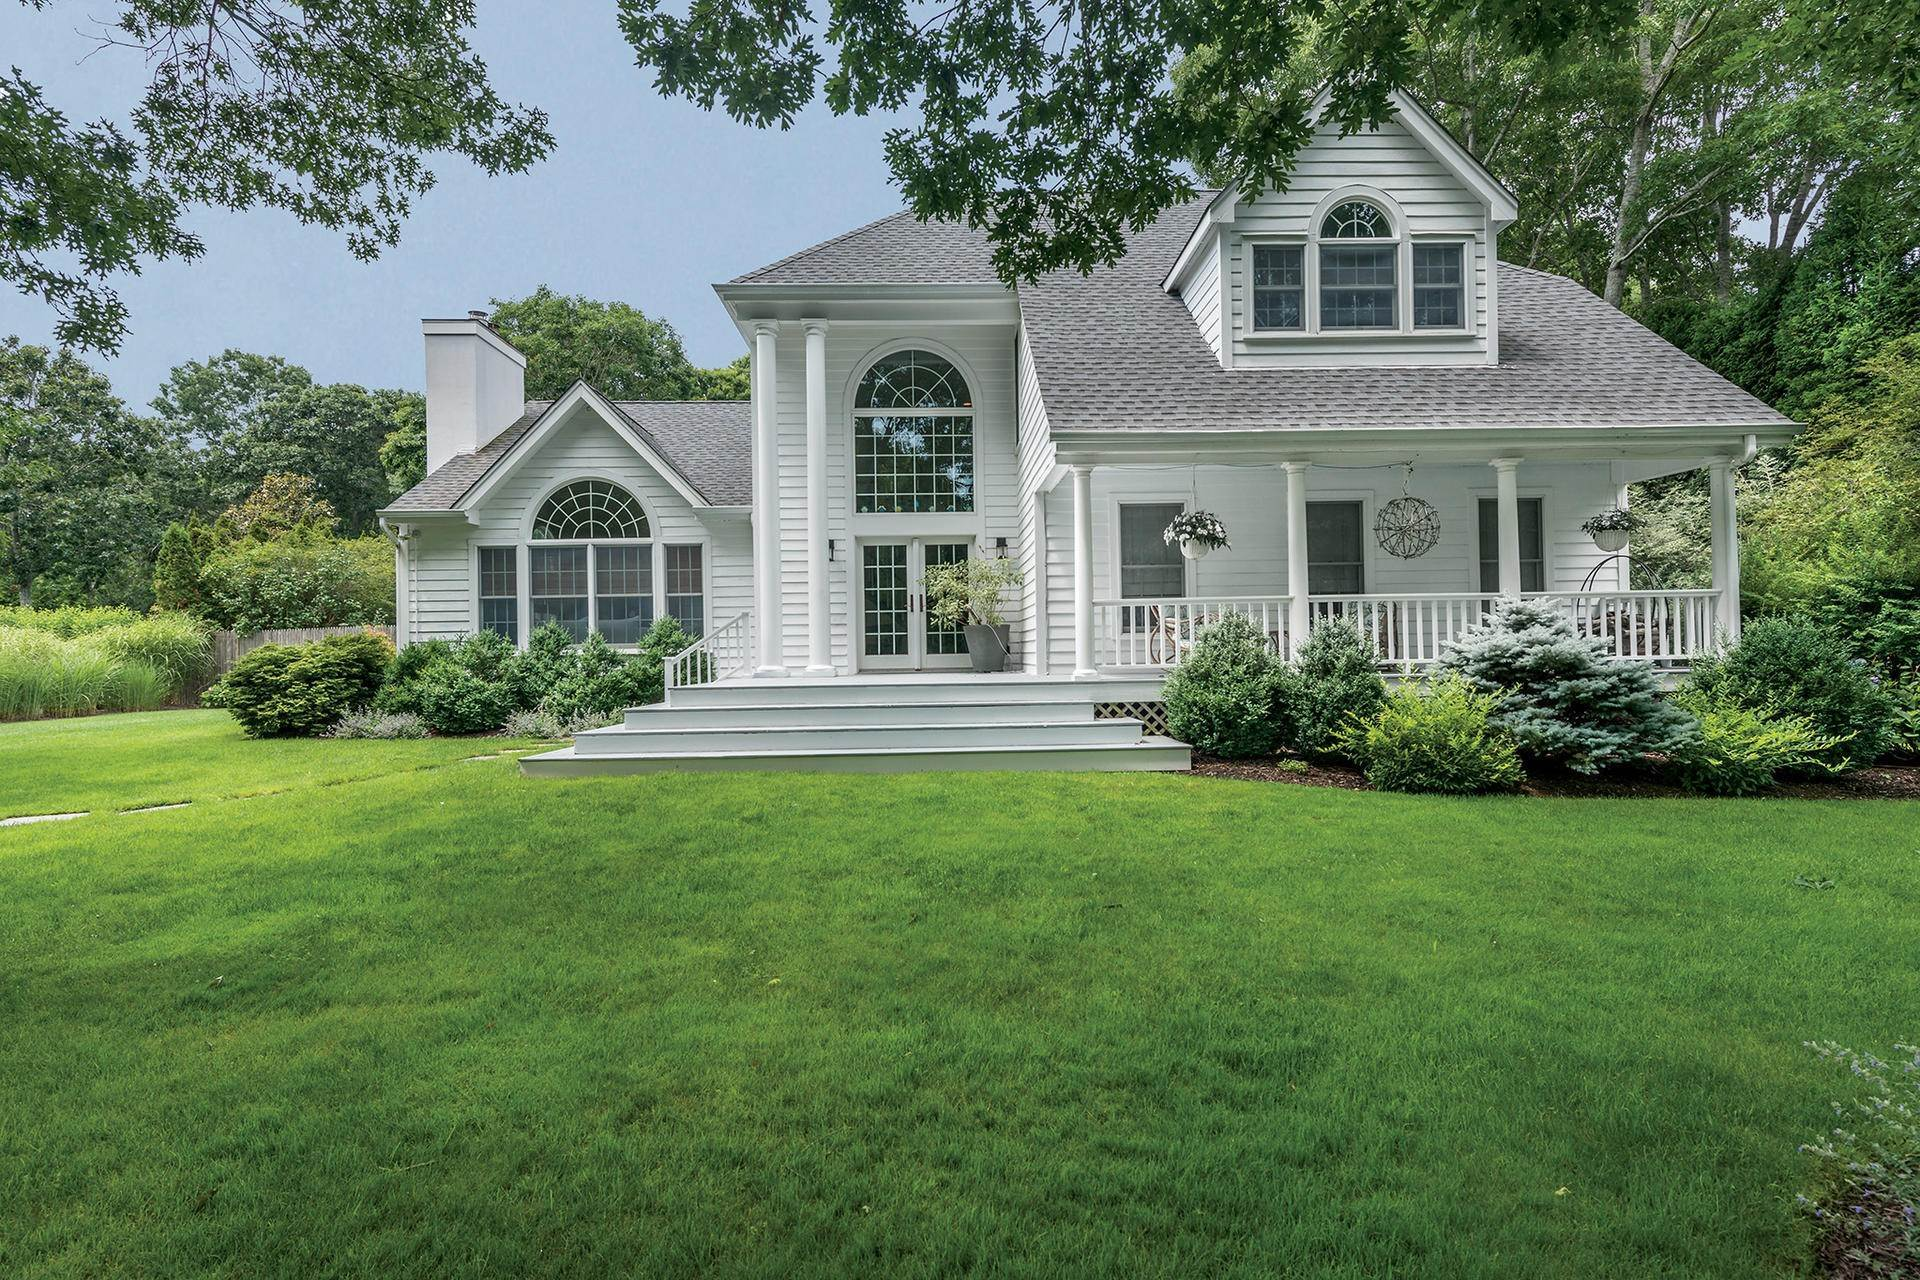 Single Family Homes at Bridgehampton Ideal: Style, Substance And Setting 21 Woodruff Lane, Bridgehampton, Southampton Town, NY 11932